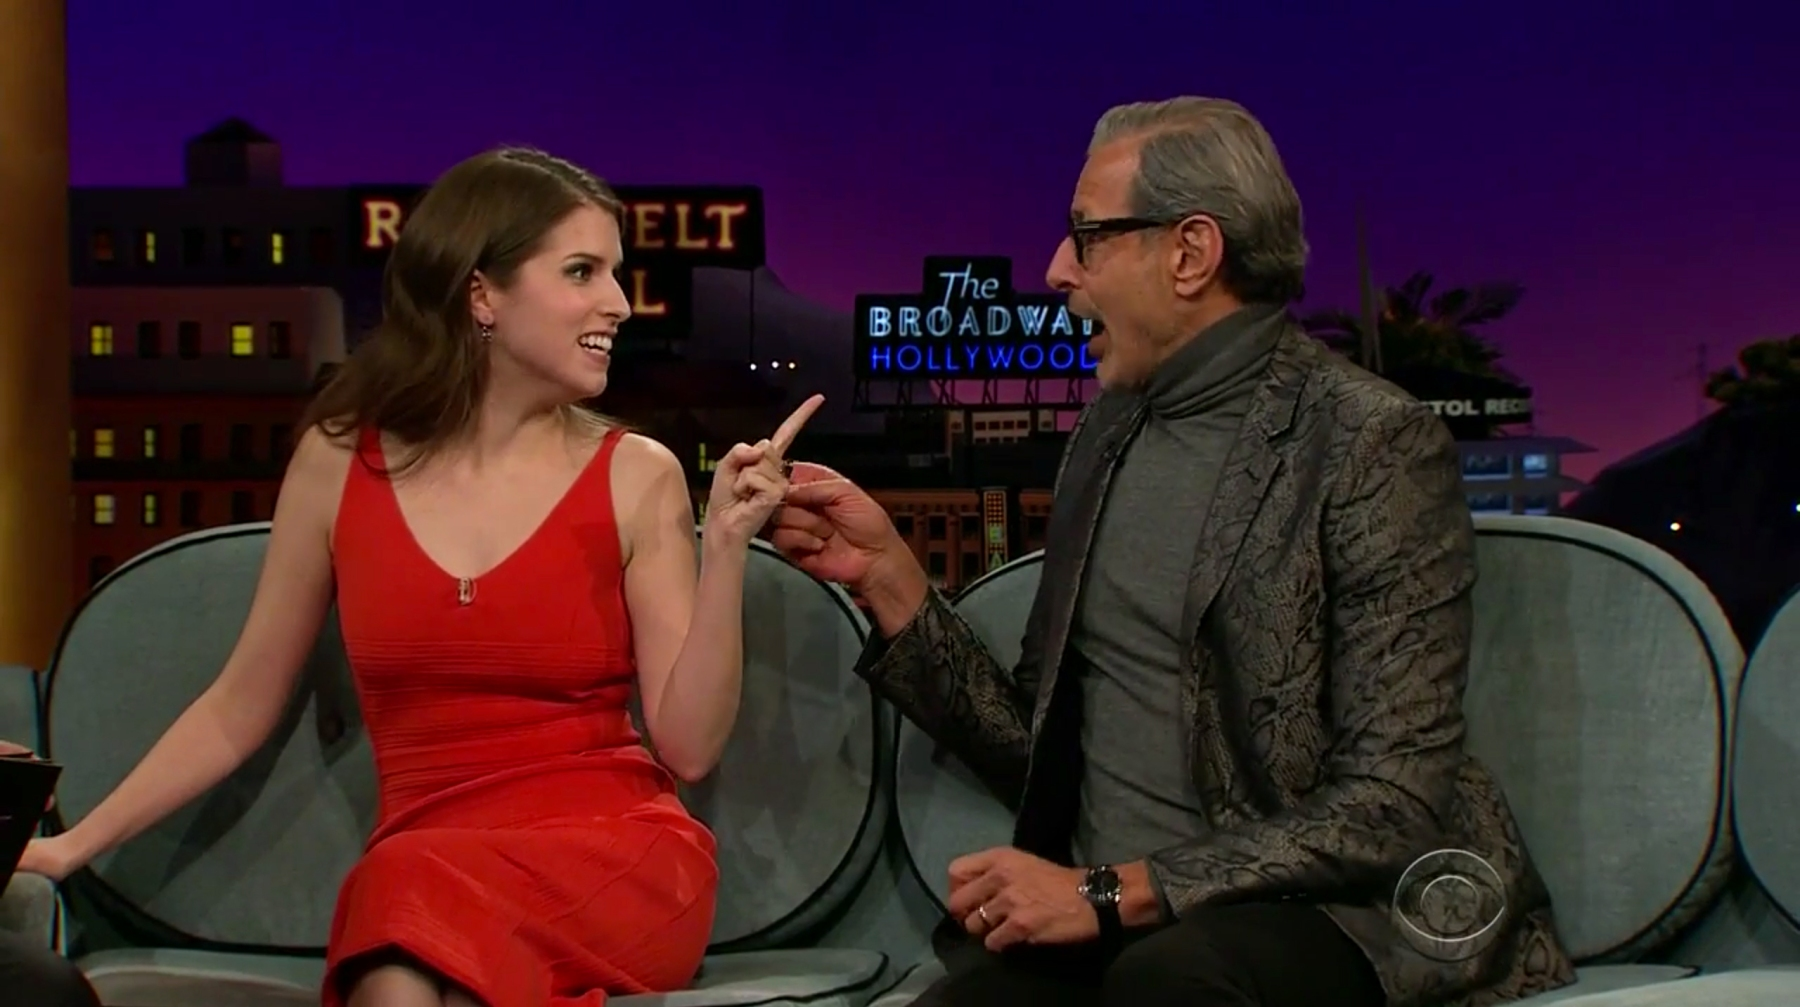 Jeff Goldblum Tried to Dance With Anna Kendrick Before Introducing Himself